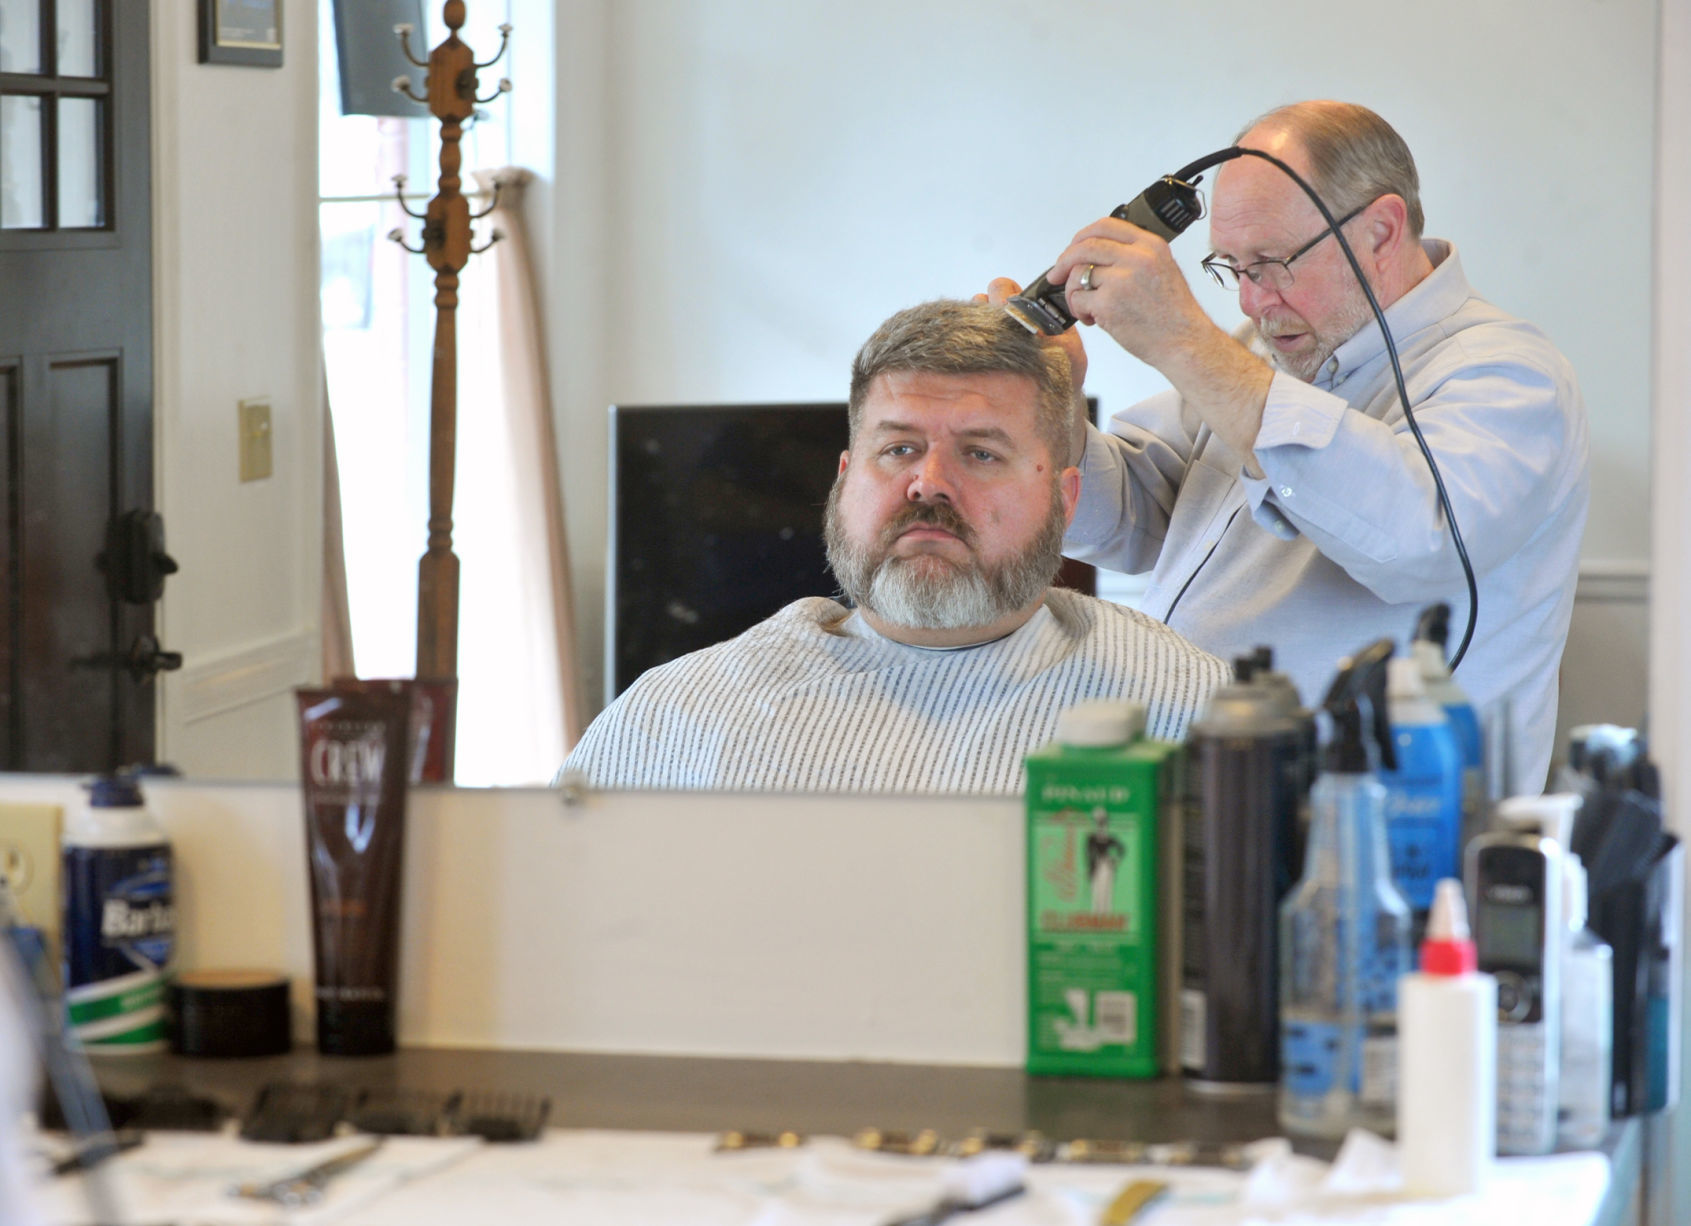 Pifkin has been cutting hair for four generations